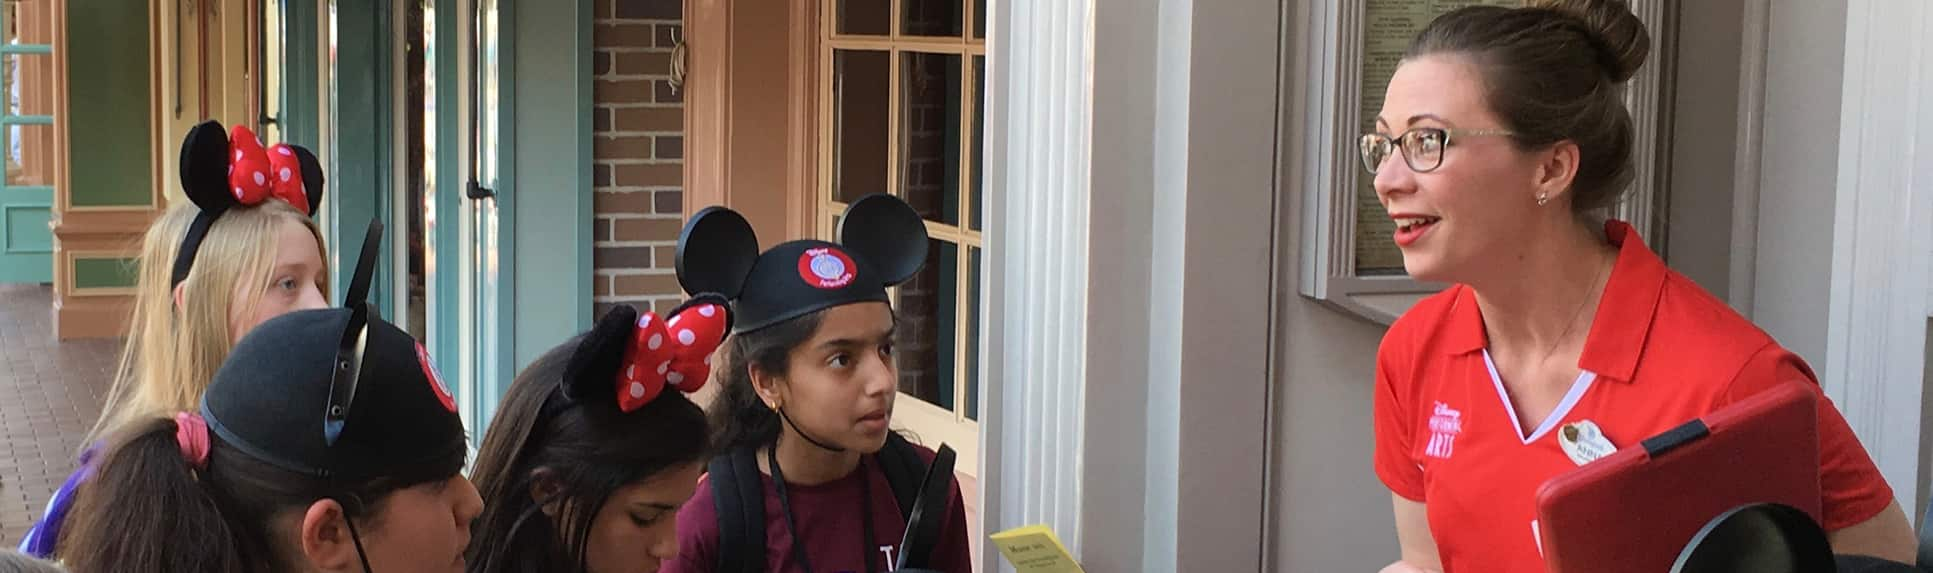 A Cast Member speaking to a small group of preteens wearing Mickey ears